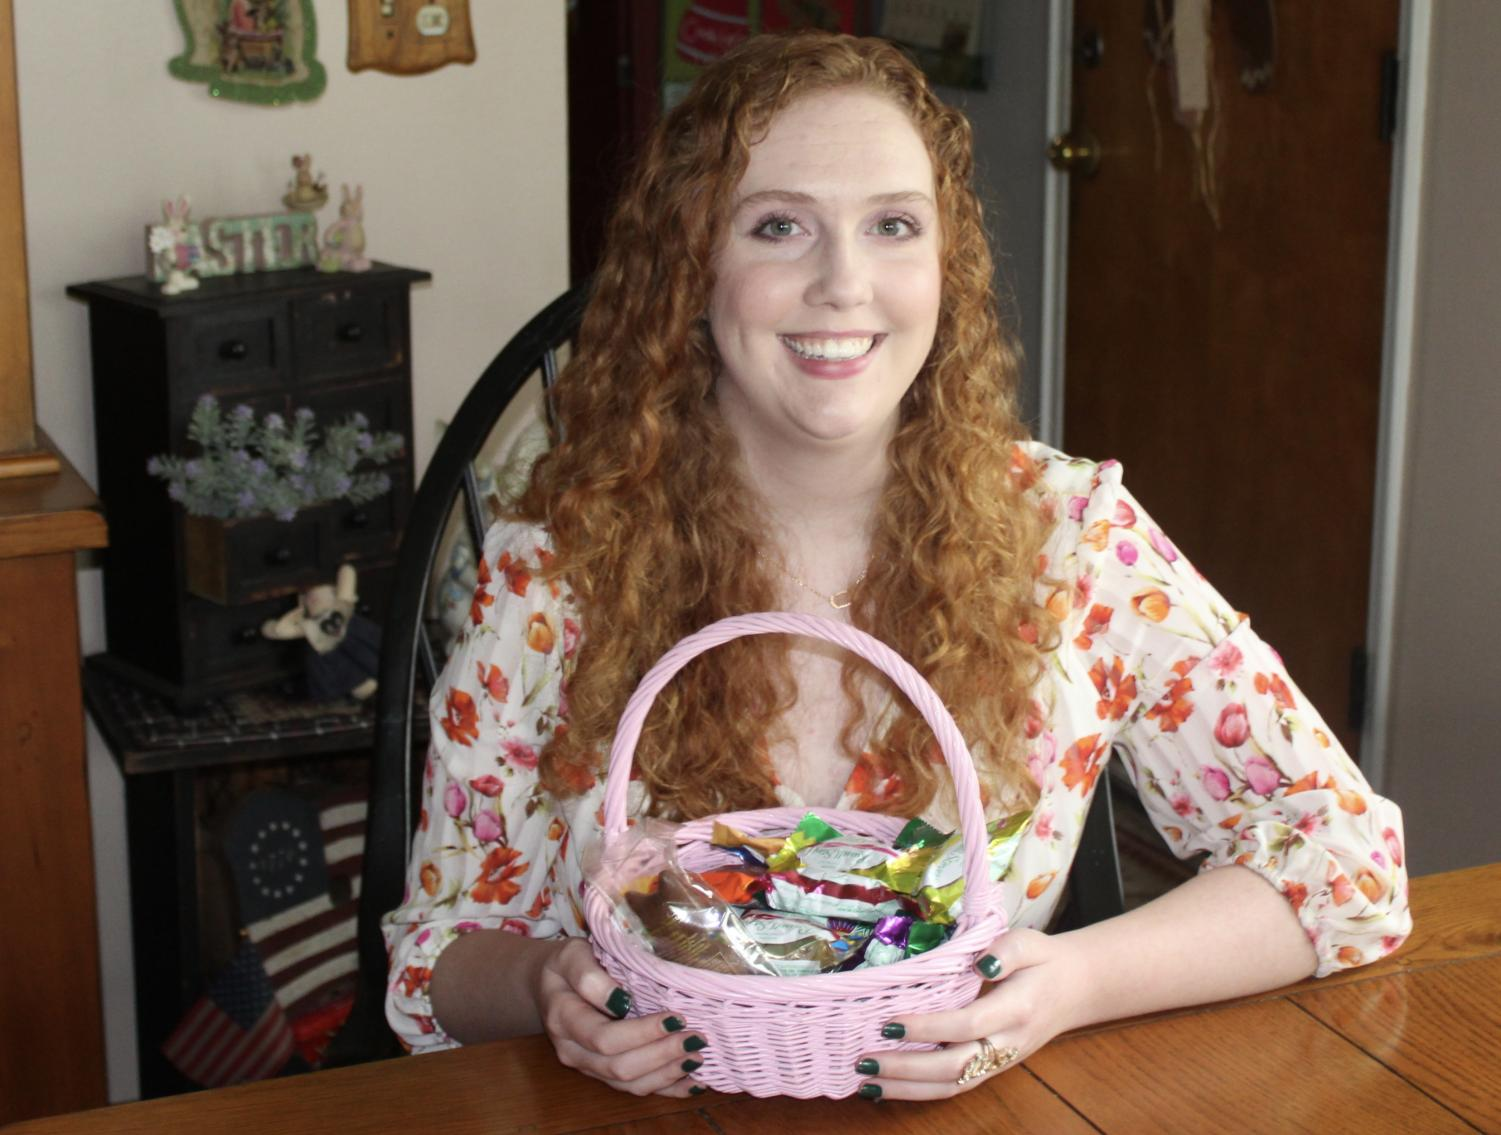 Amanda posing with her Easter basket, eager to dig in to the candy and chocolates, some of her absolute favorite things.